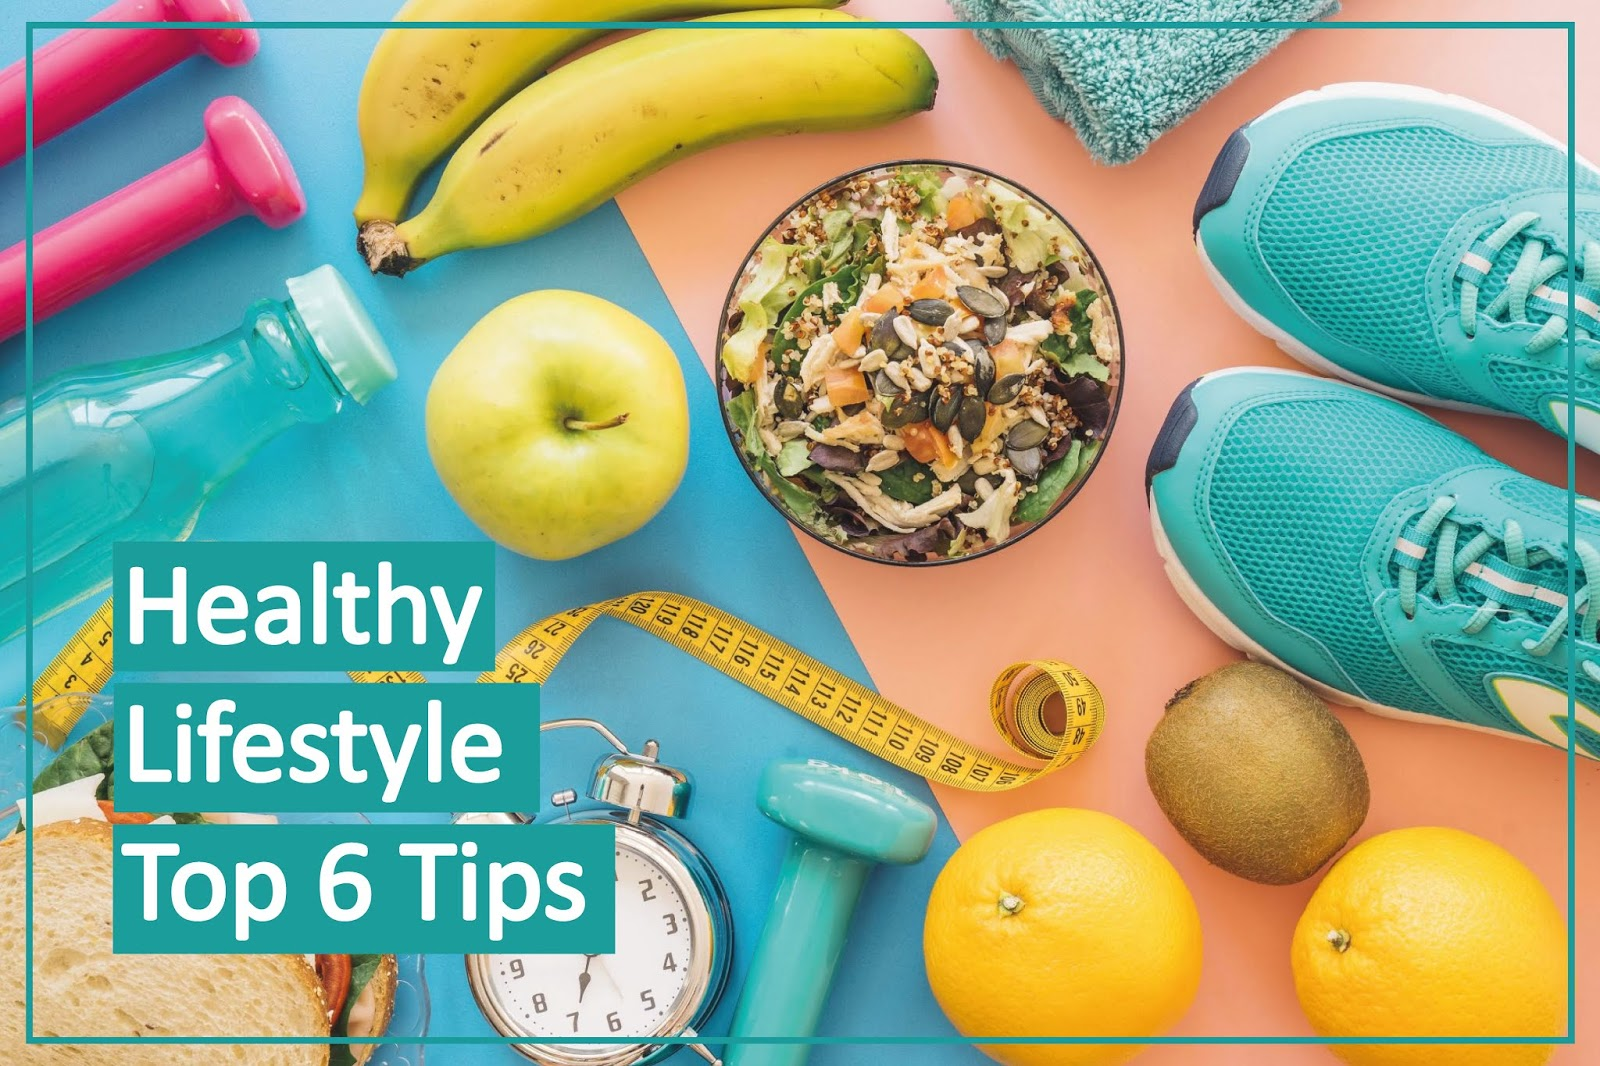 6 Simple Tips to a Healthy Lifestyle